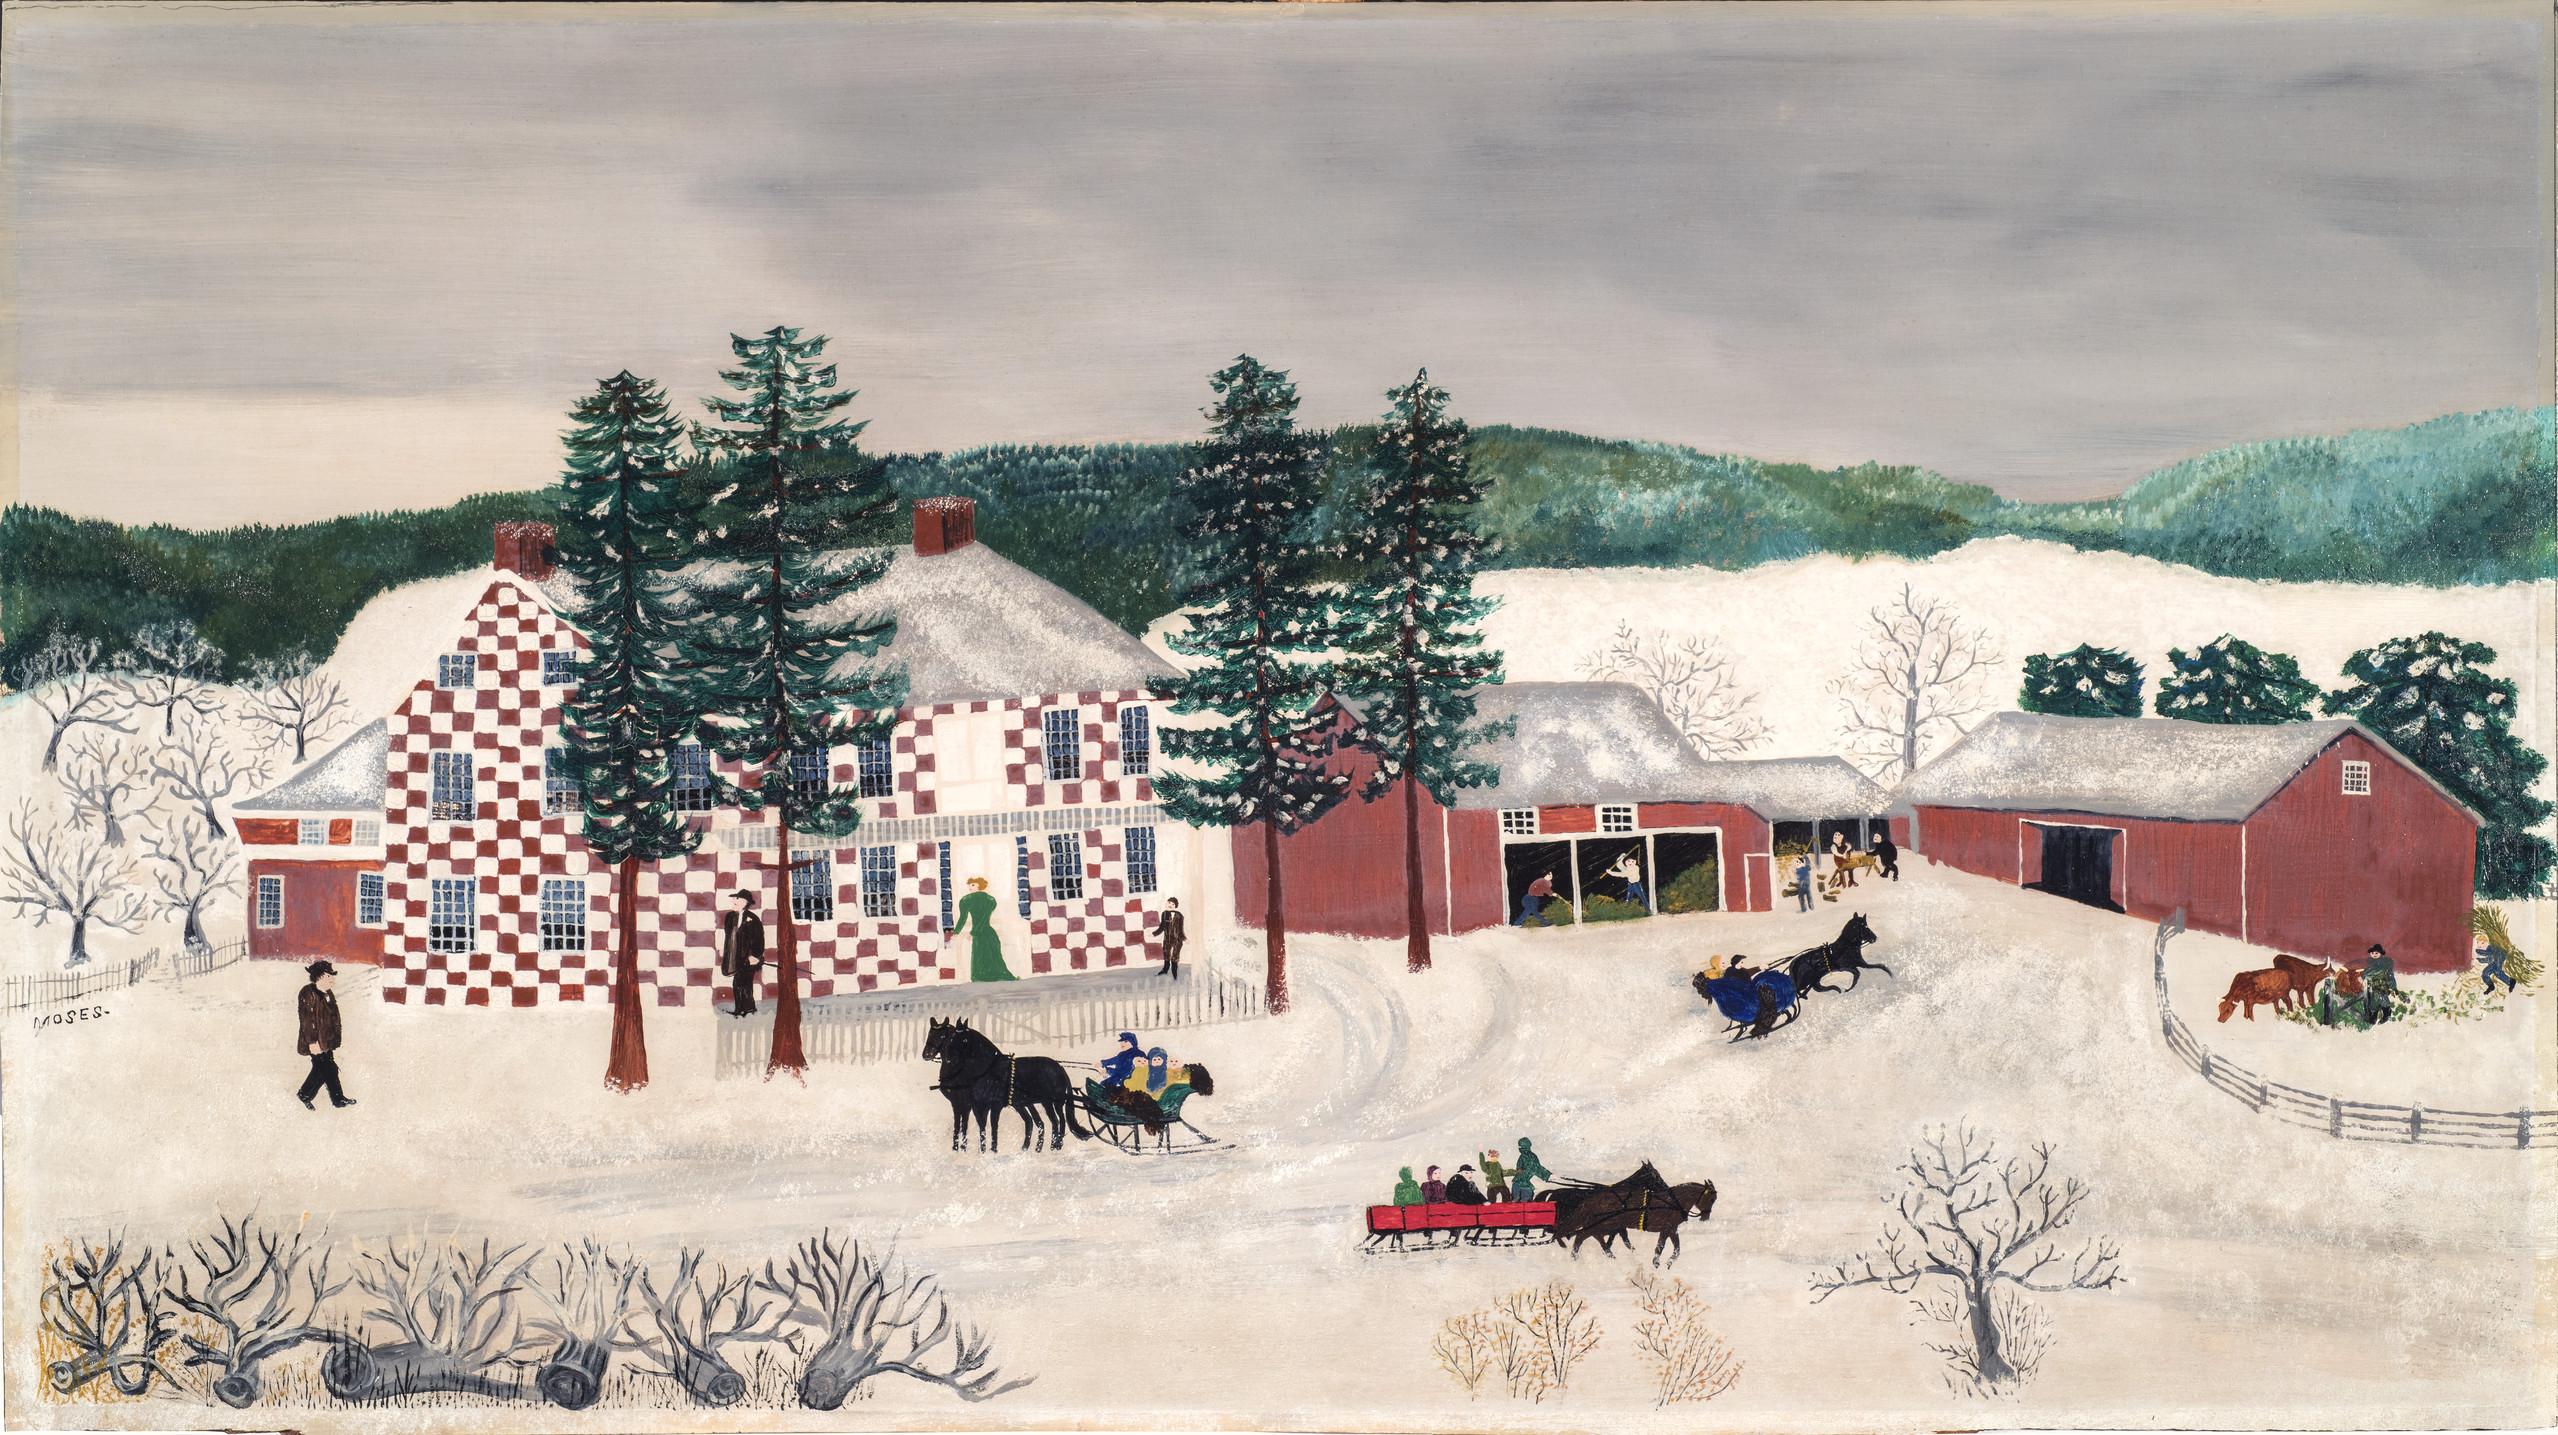 Idyllic landscape painted in a naive, folk style. The painting features a large house and red barns surrounded by white snow, bare and pine trees, and distant, green hills. Light-skinned people mill about, some working in barns, and many in horse-drawn sleds, under a gray sky.